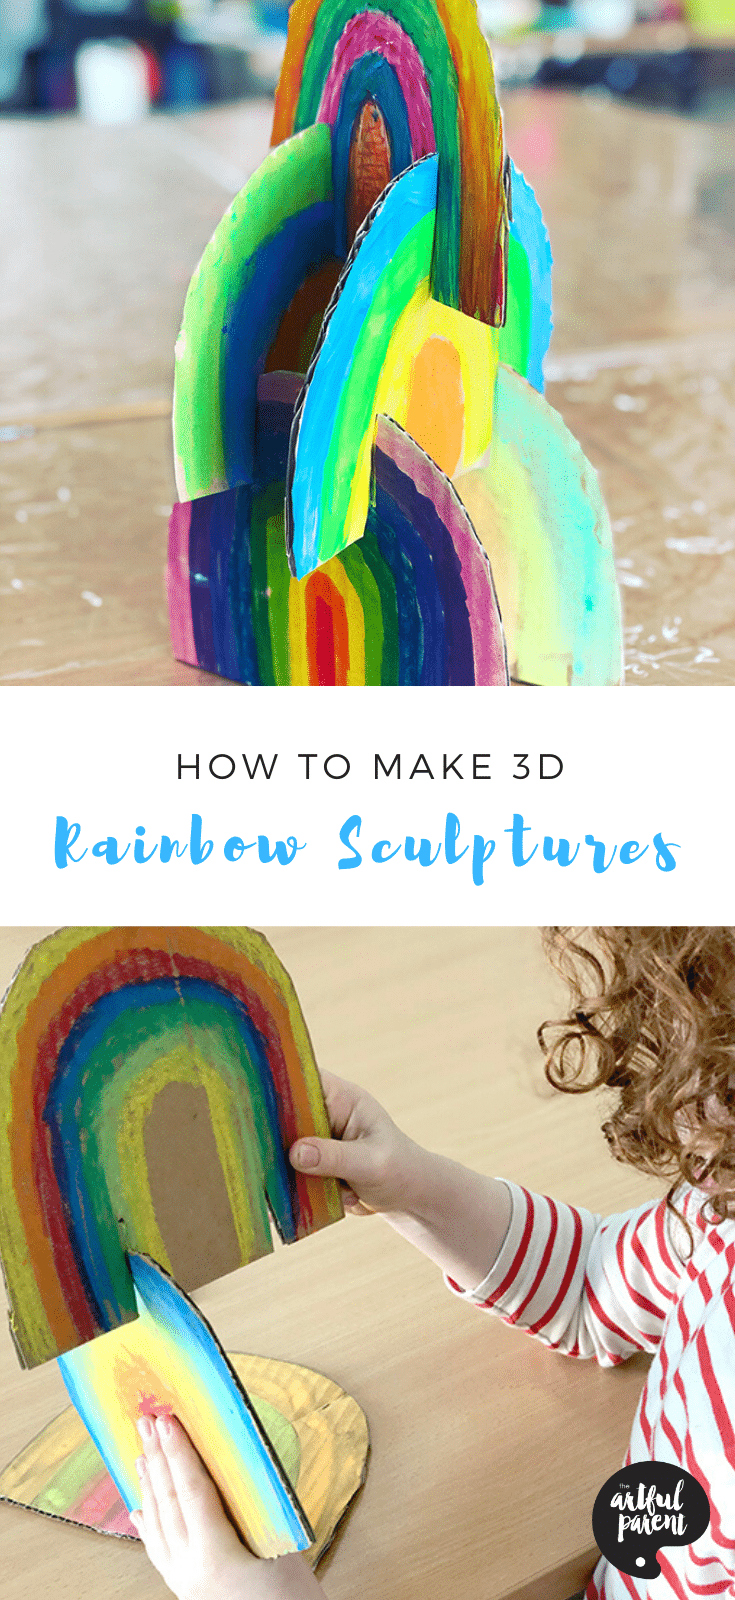 How to Make a 3D Rainbow Cardboard Sculpture for Kids